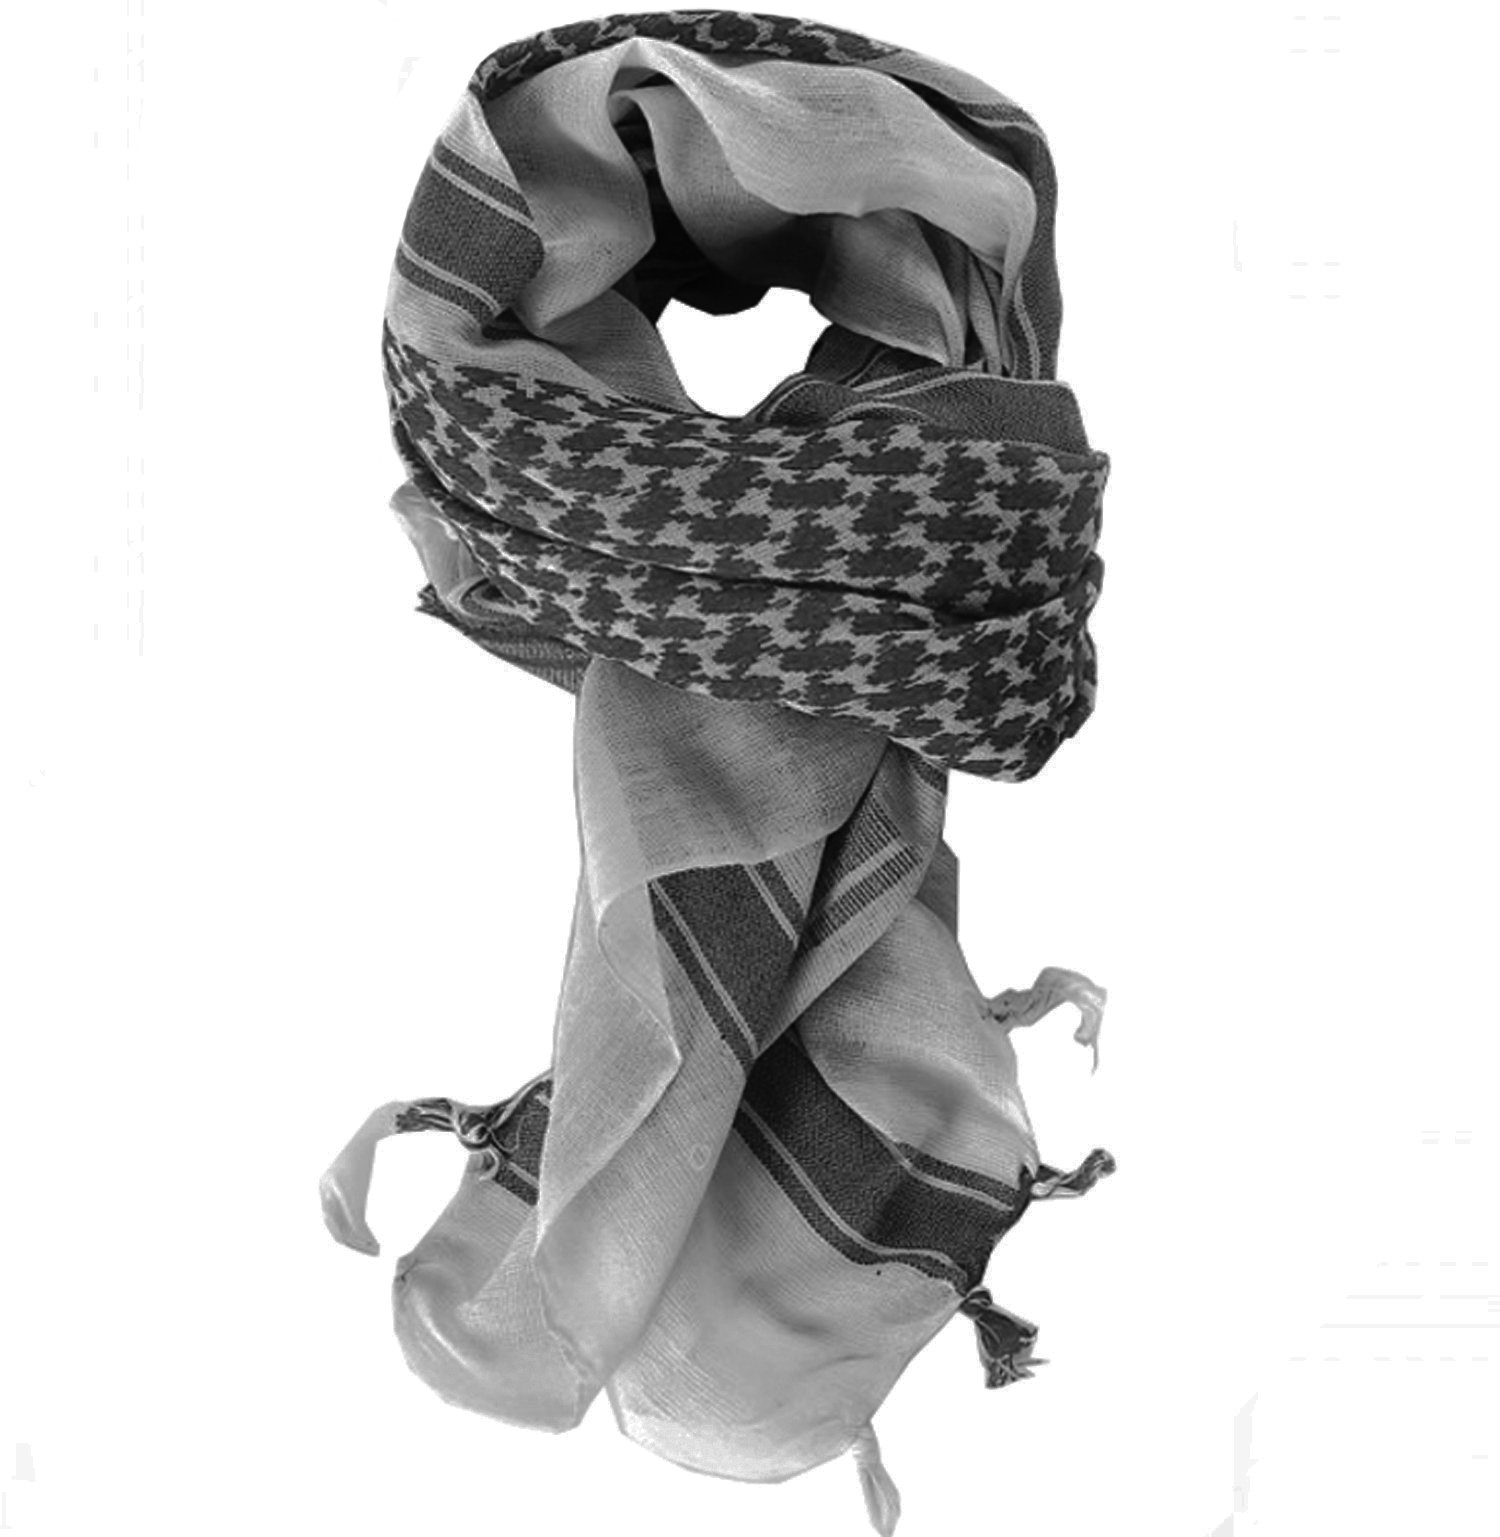 100% Cotton Keffiyeh Tactical Desert Scarf Wrap Shemagh Head Neck Arab Scarf Gray by MAGNIVIT (Image #5)